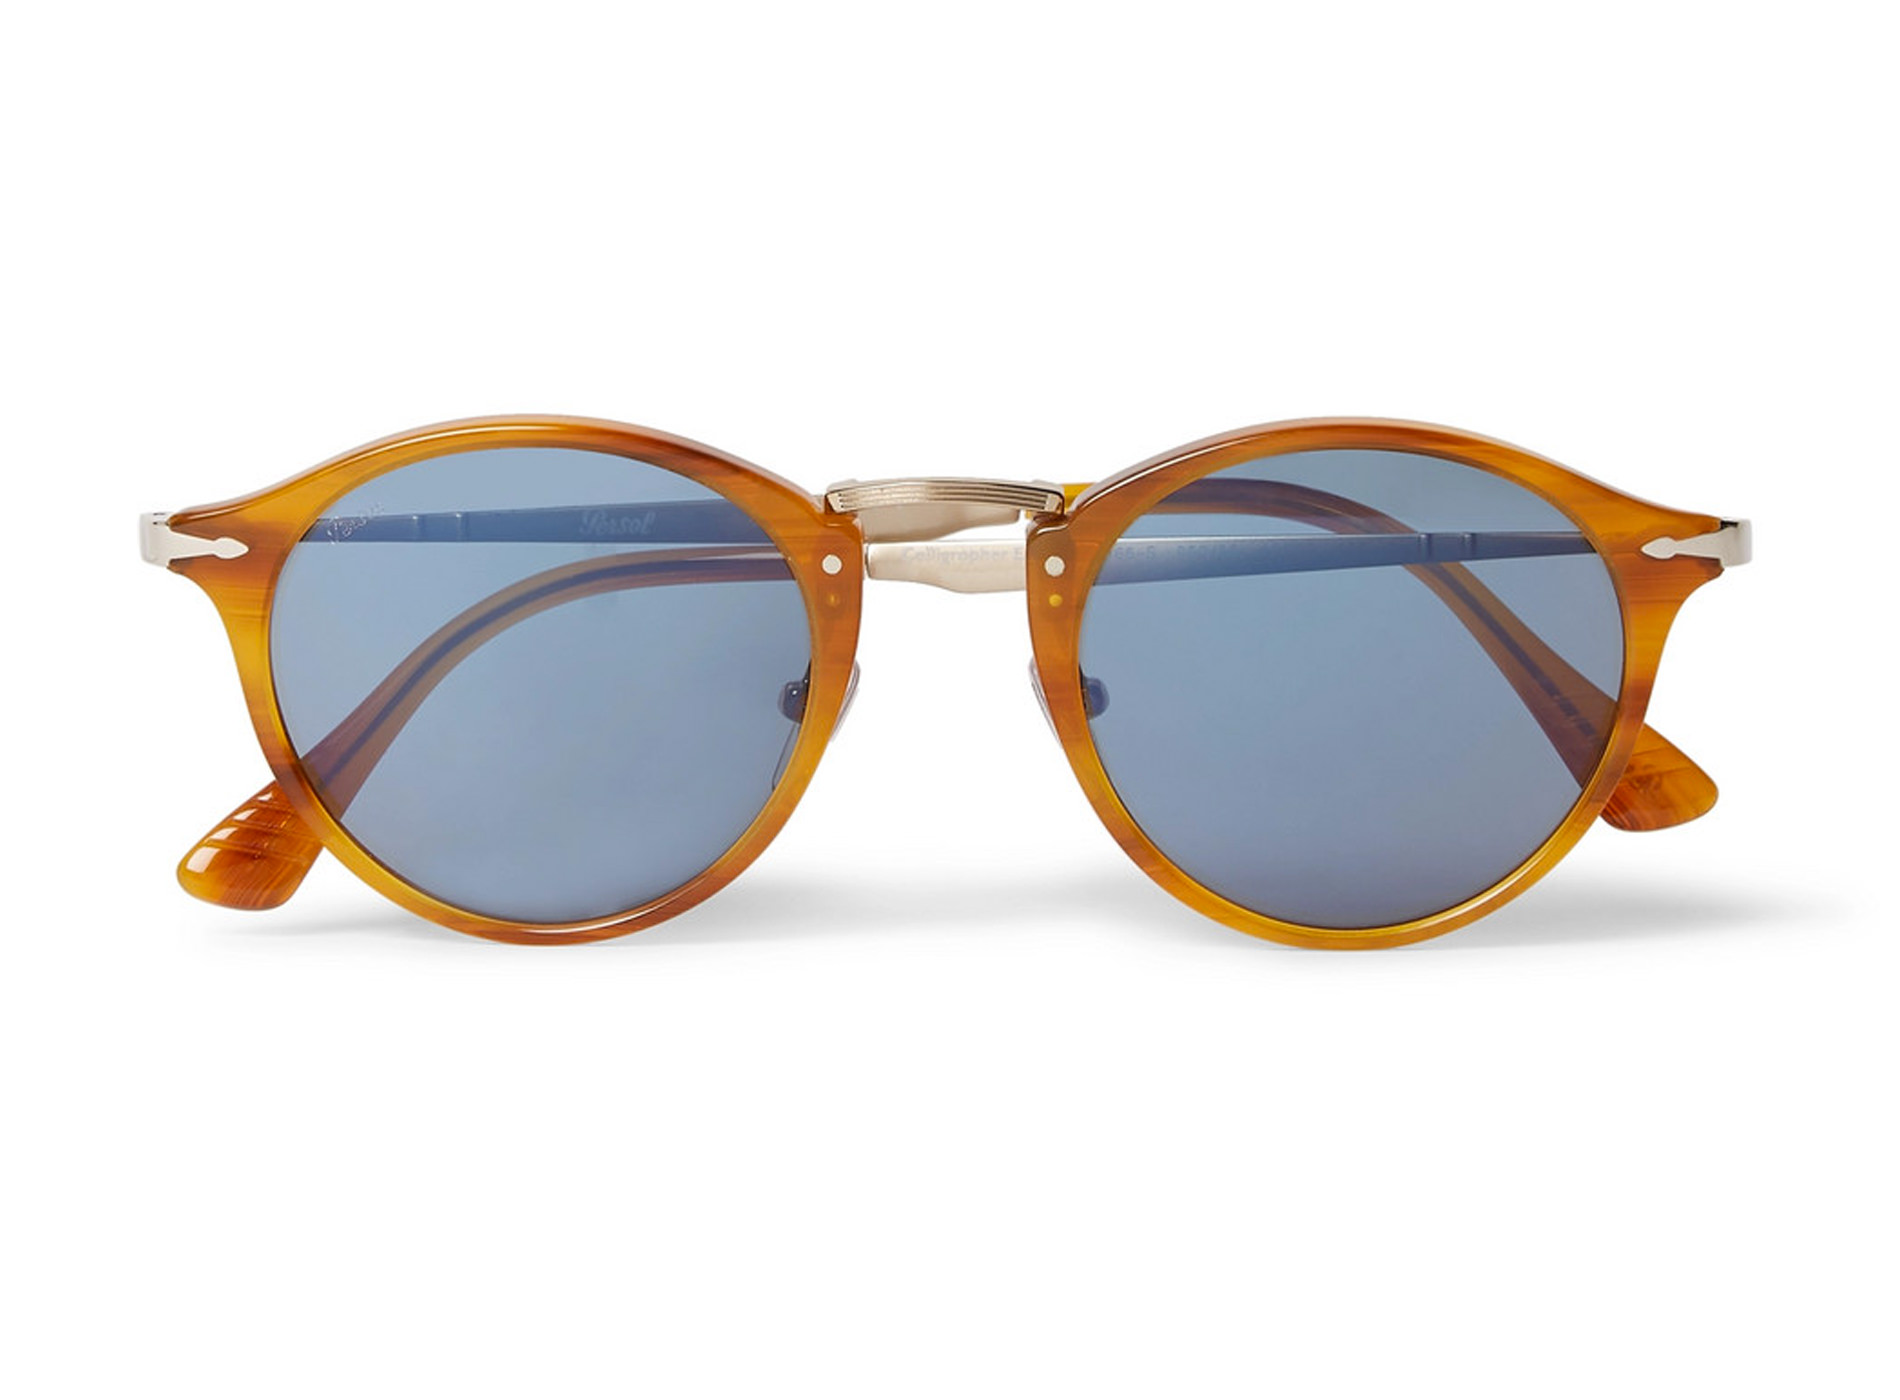 Style Mr Porter Lunettes Soleil Persol Calligrapher Edition